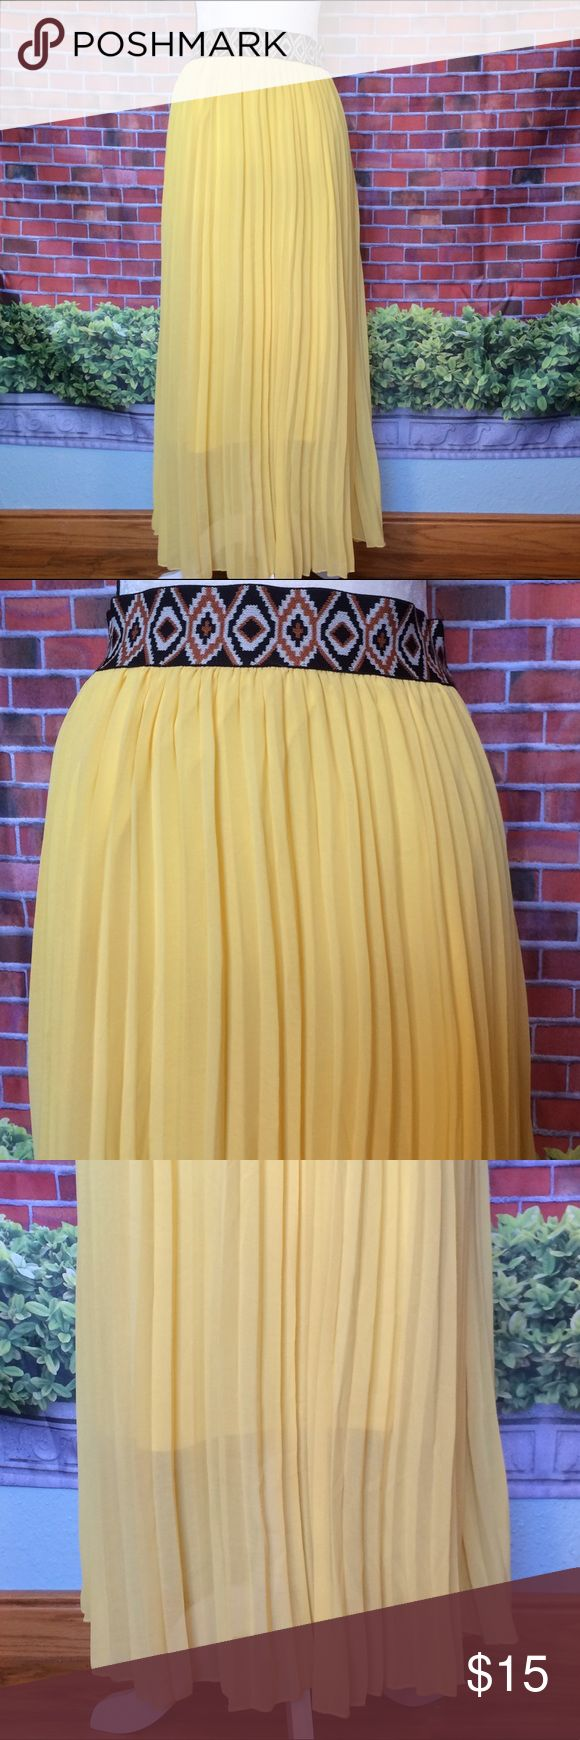 Magic - Beautiful bright yellow pleated maxi skirt Magic - Beautiful bright yellow pleated maxi skirt. Waist band has an Aztec style print. Partly lined. Open to reasonable offers. Magic Skirts Maxi